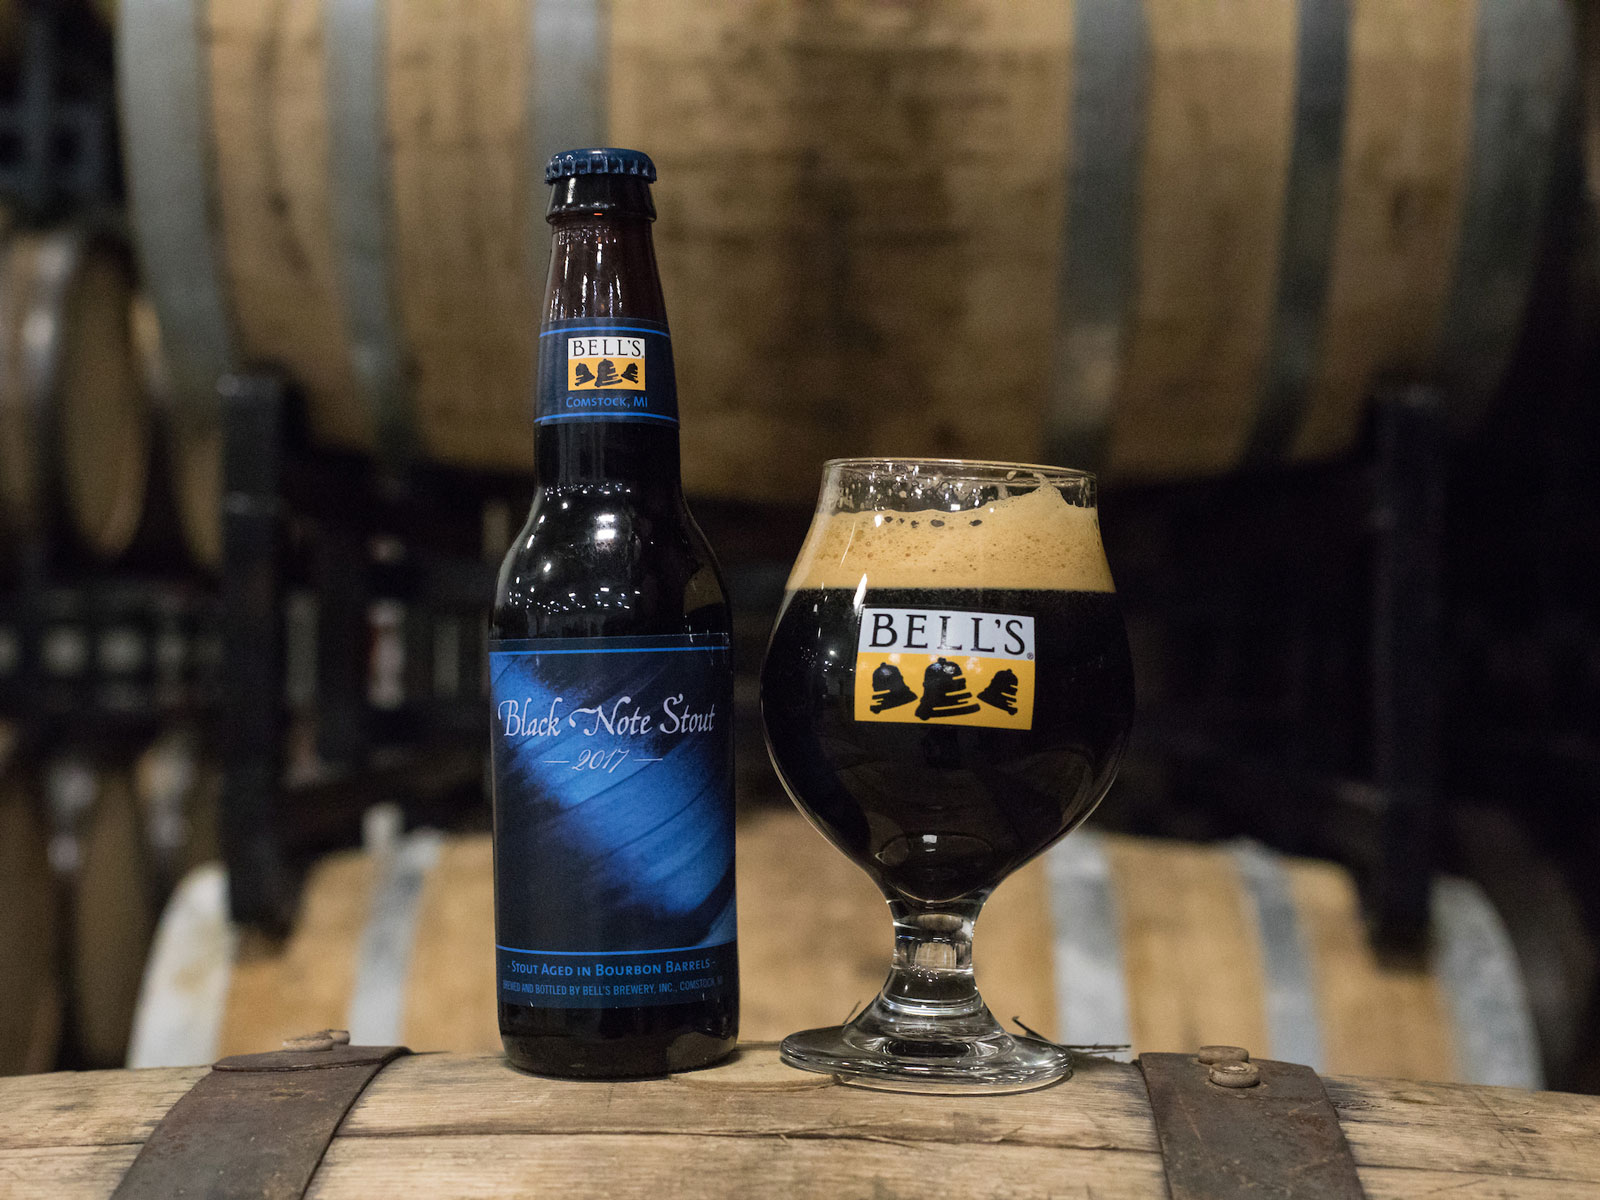 Black Note by Bell's Brewery